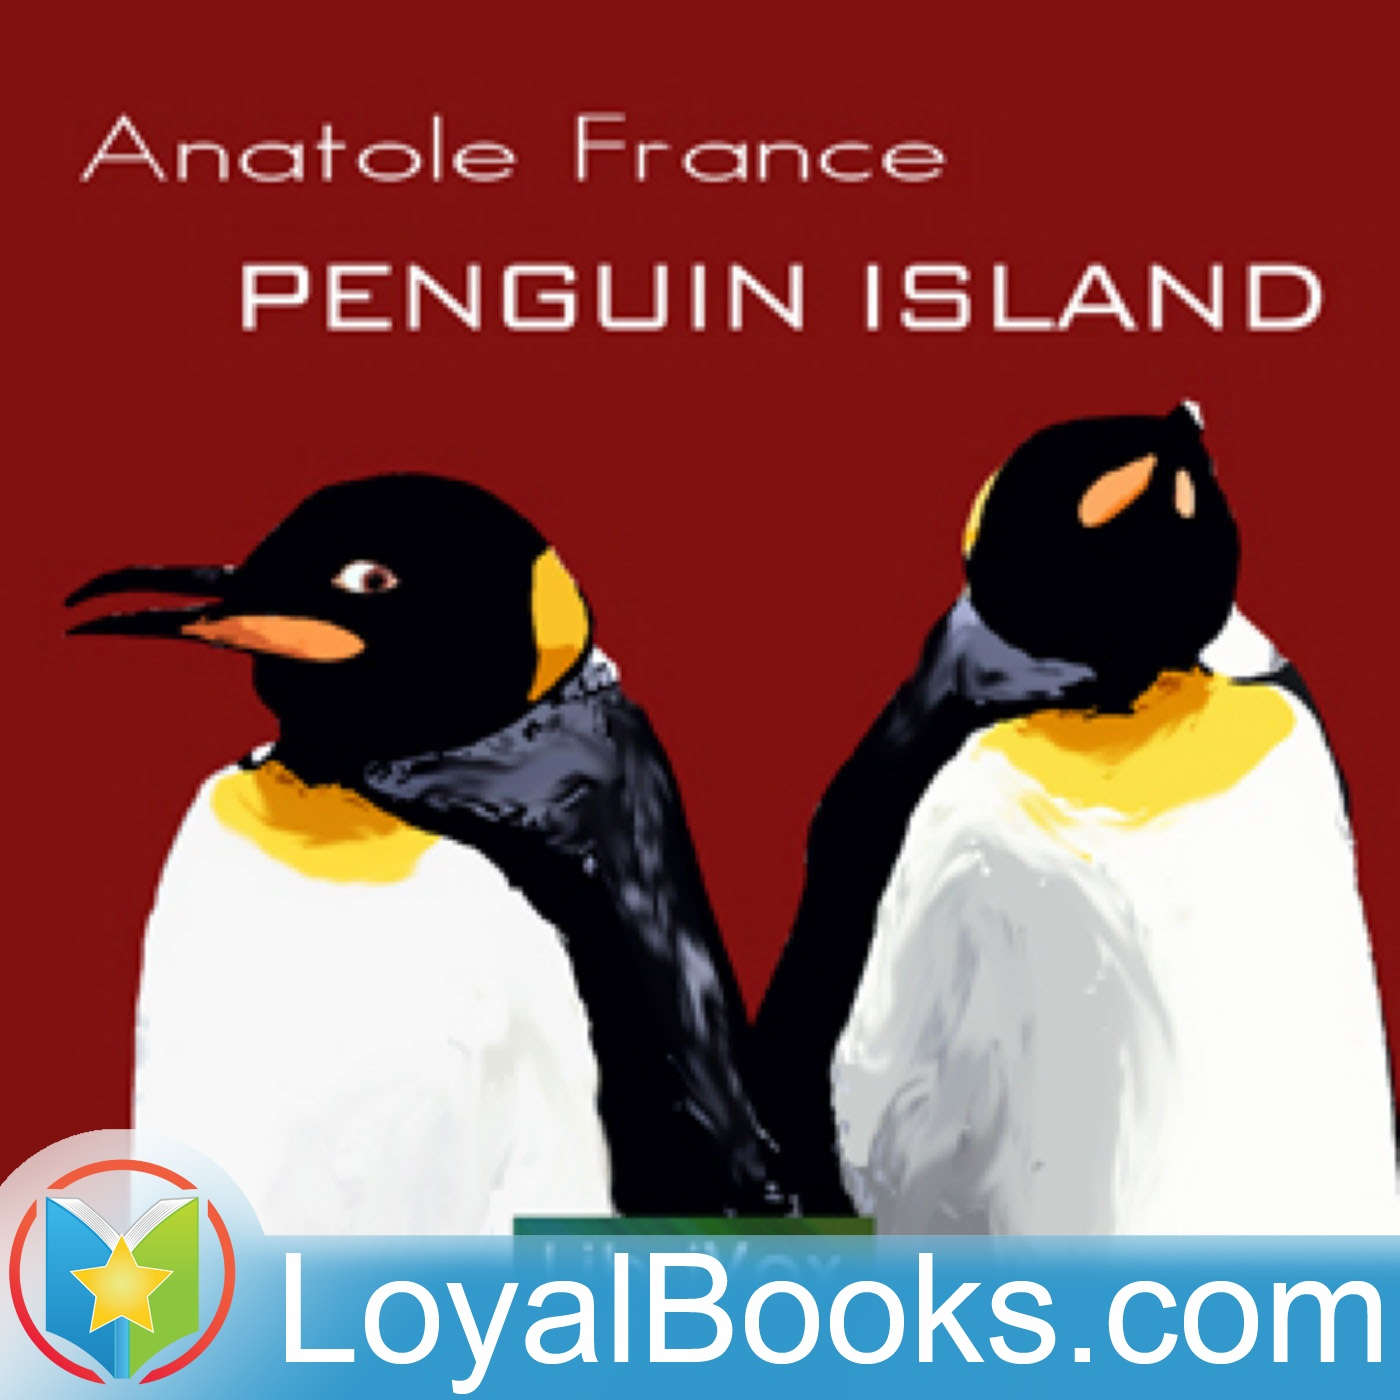 <![CDATA[Penguin Island by Anatole France]]>